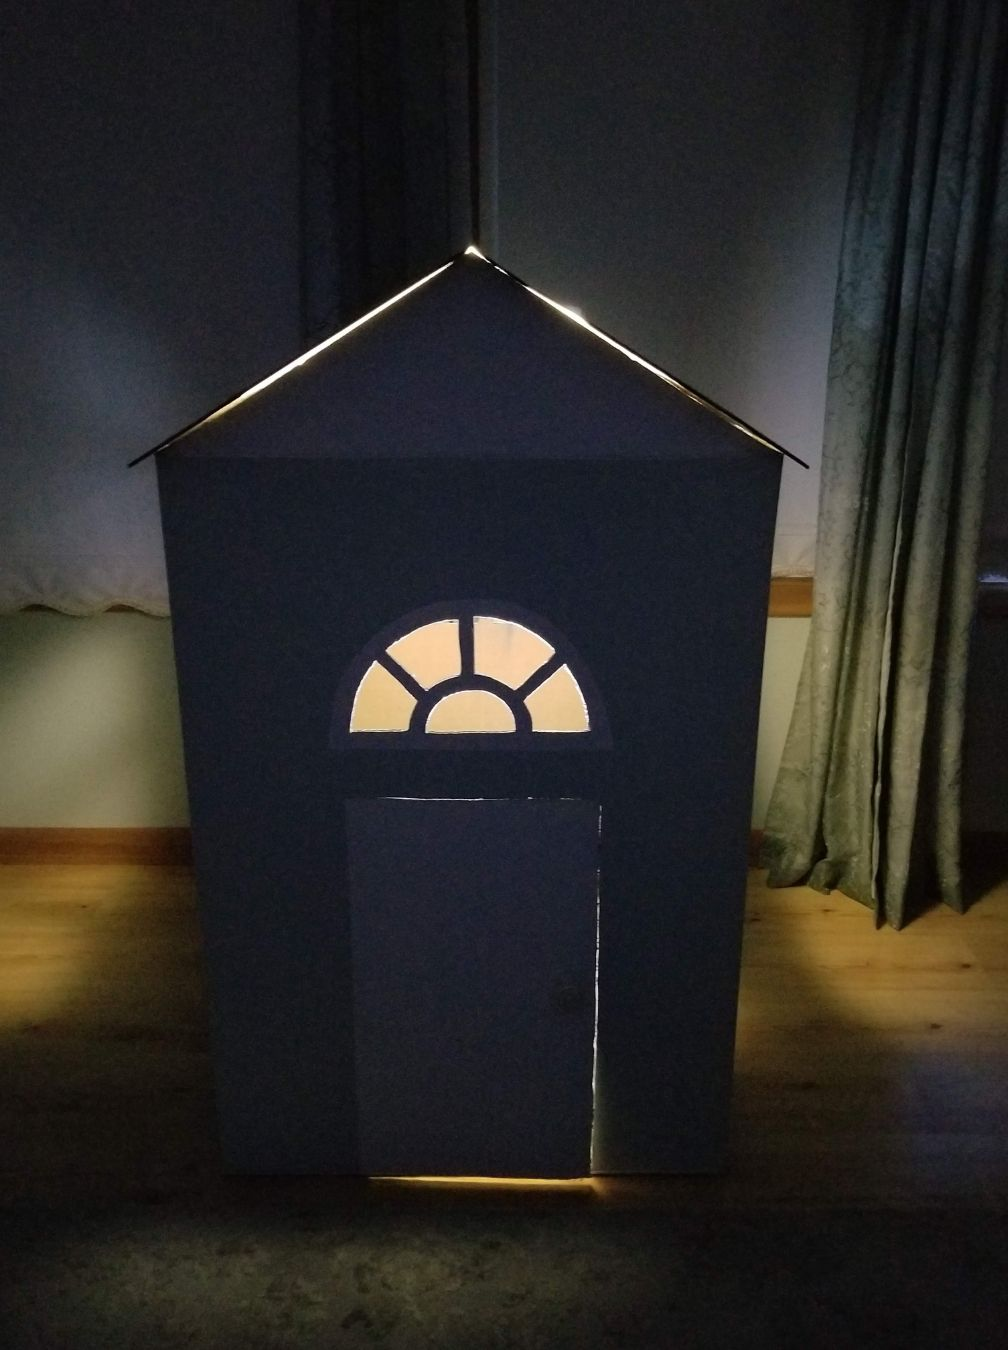 Cardboard Playhouse lit up at night